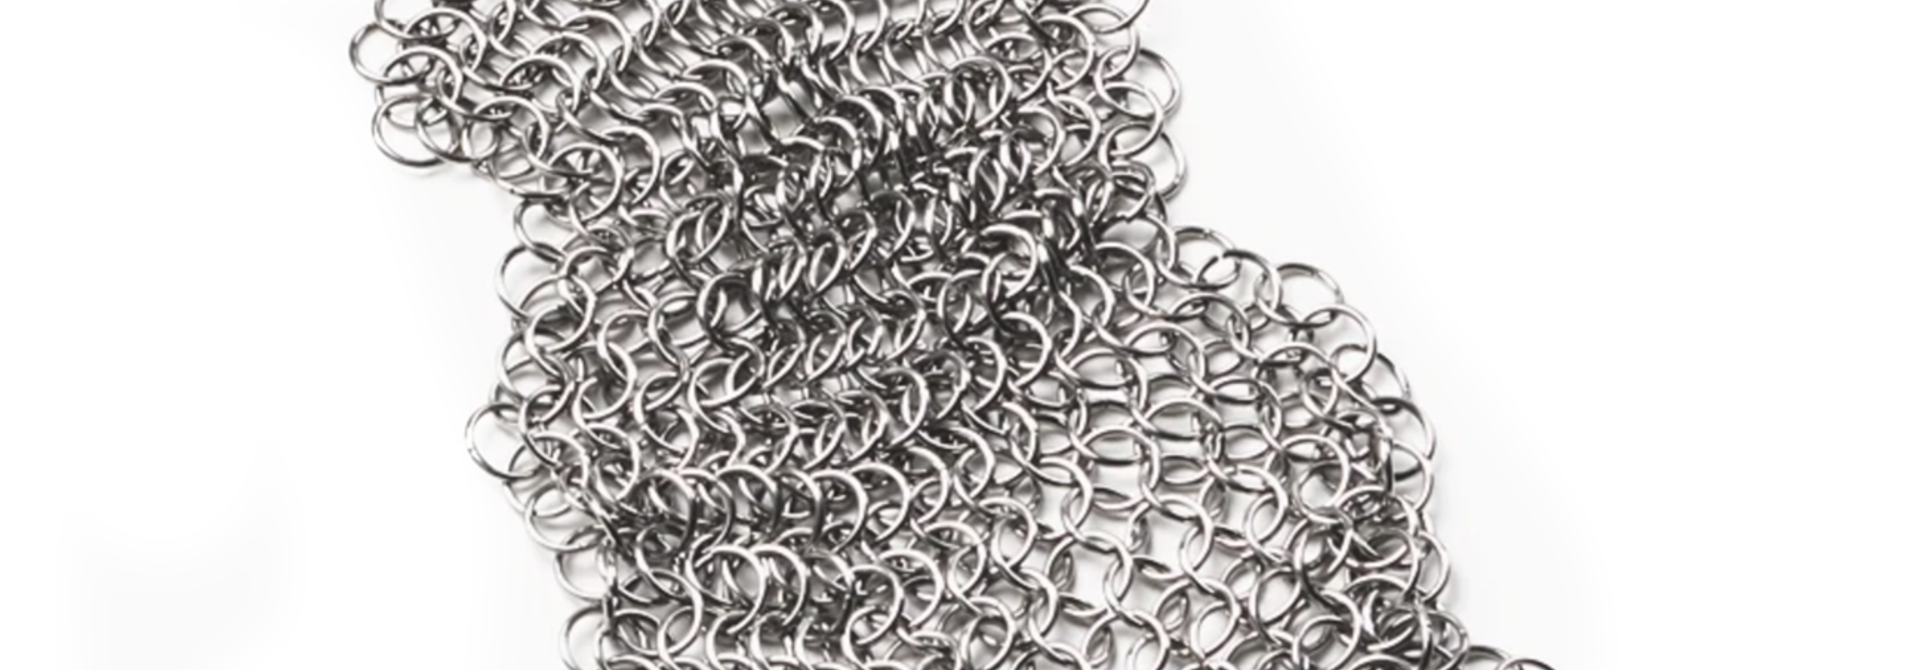 Stainless Steel Cleaning Mesh for cast iron